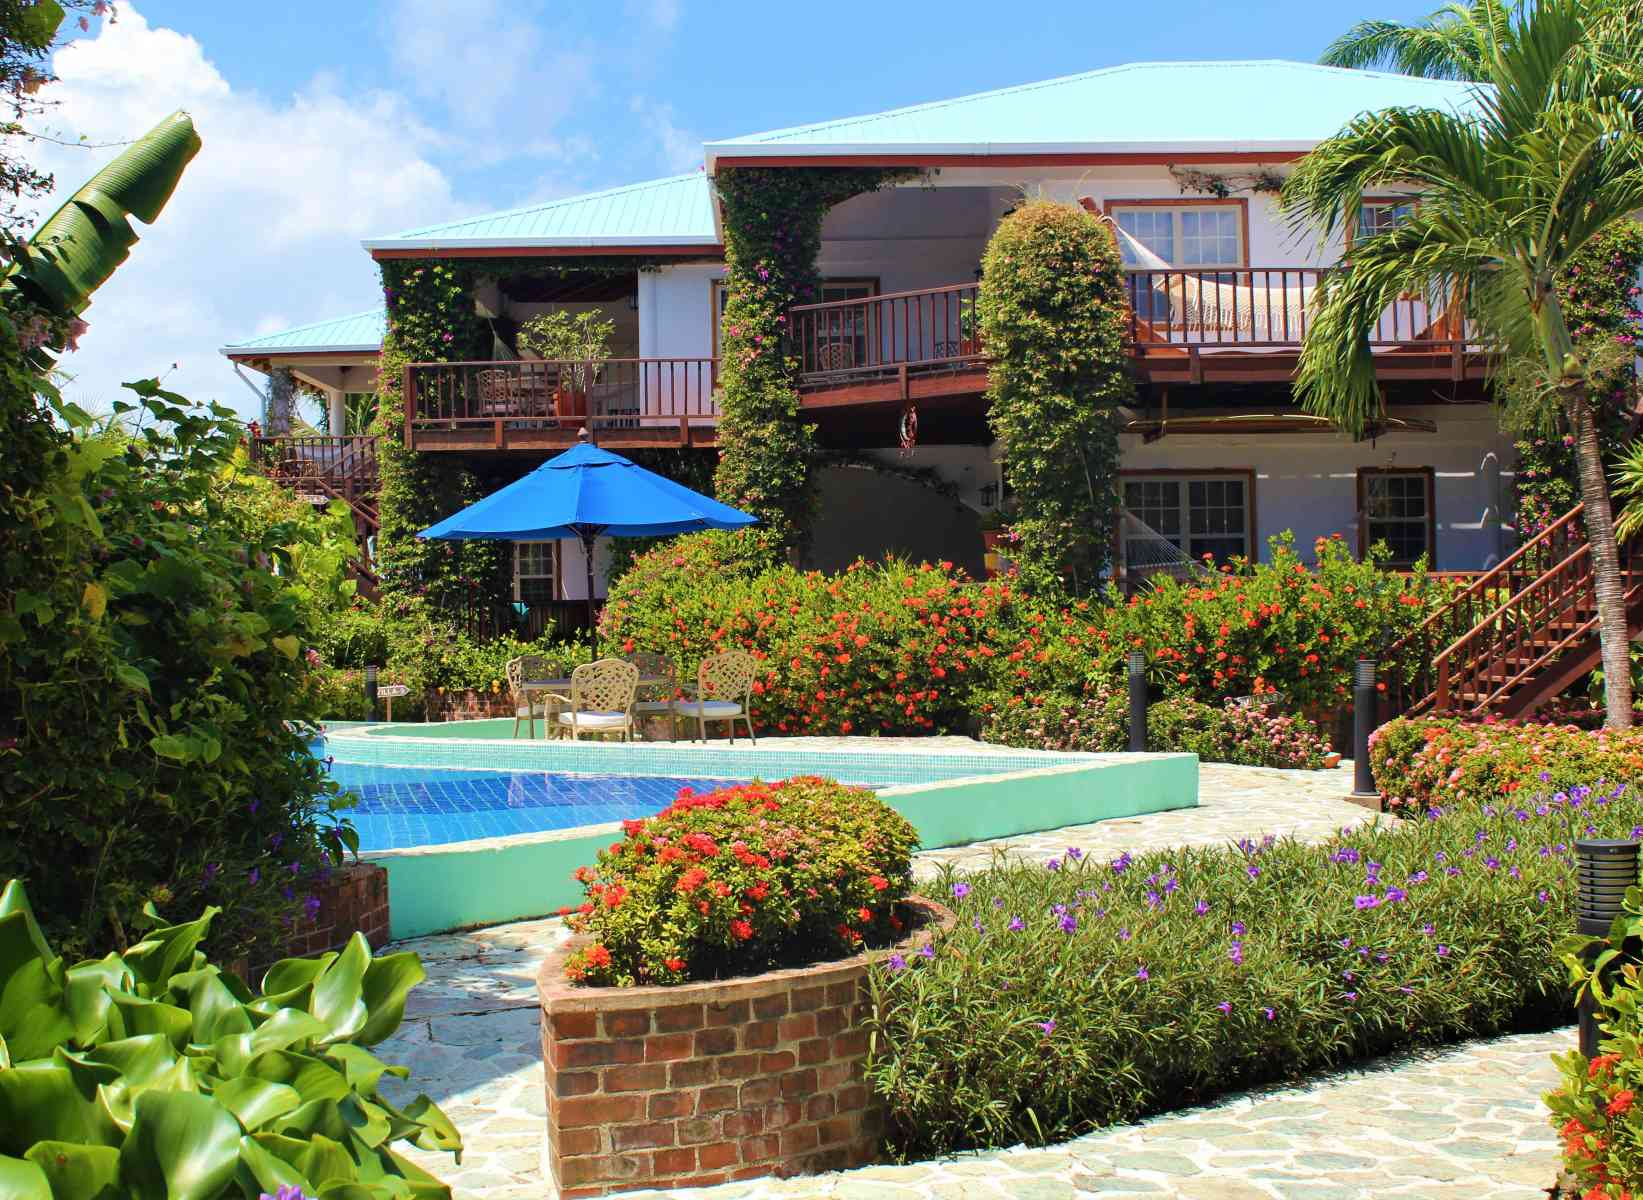 The 8 Best Belize All-Inclusive Resorts of 2020 Hotel House Plans In Belize on nepal house plans, switzerland house plans, norway house plans, argentine house plans, malta house plans, sri lanka house plans, korea house plans, egypt house plans, libya house plans, new jersey house plans, guam house plans, saudi arabia house plans, panama house plans, indies house plans, barbados house plans, americas house plans, amish house plans, jamaica house plans, haiti house plans, caribbean house plans,